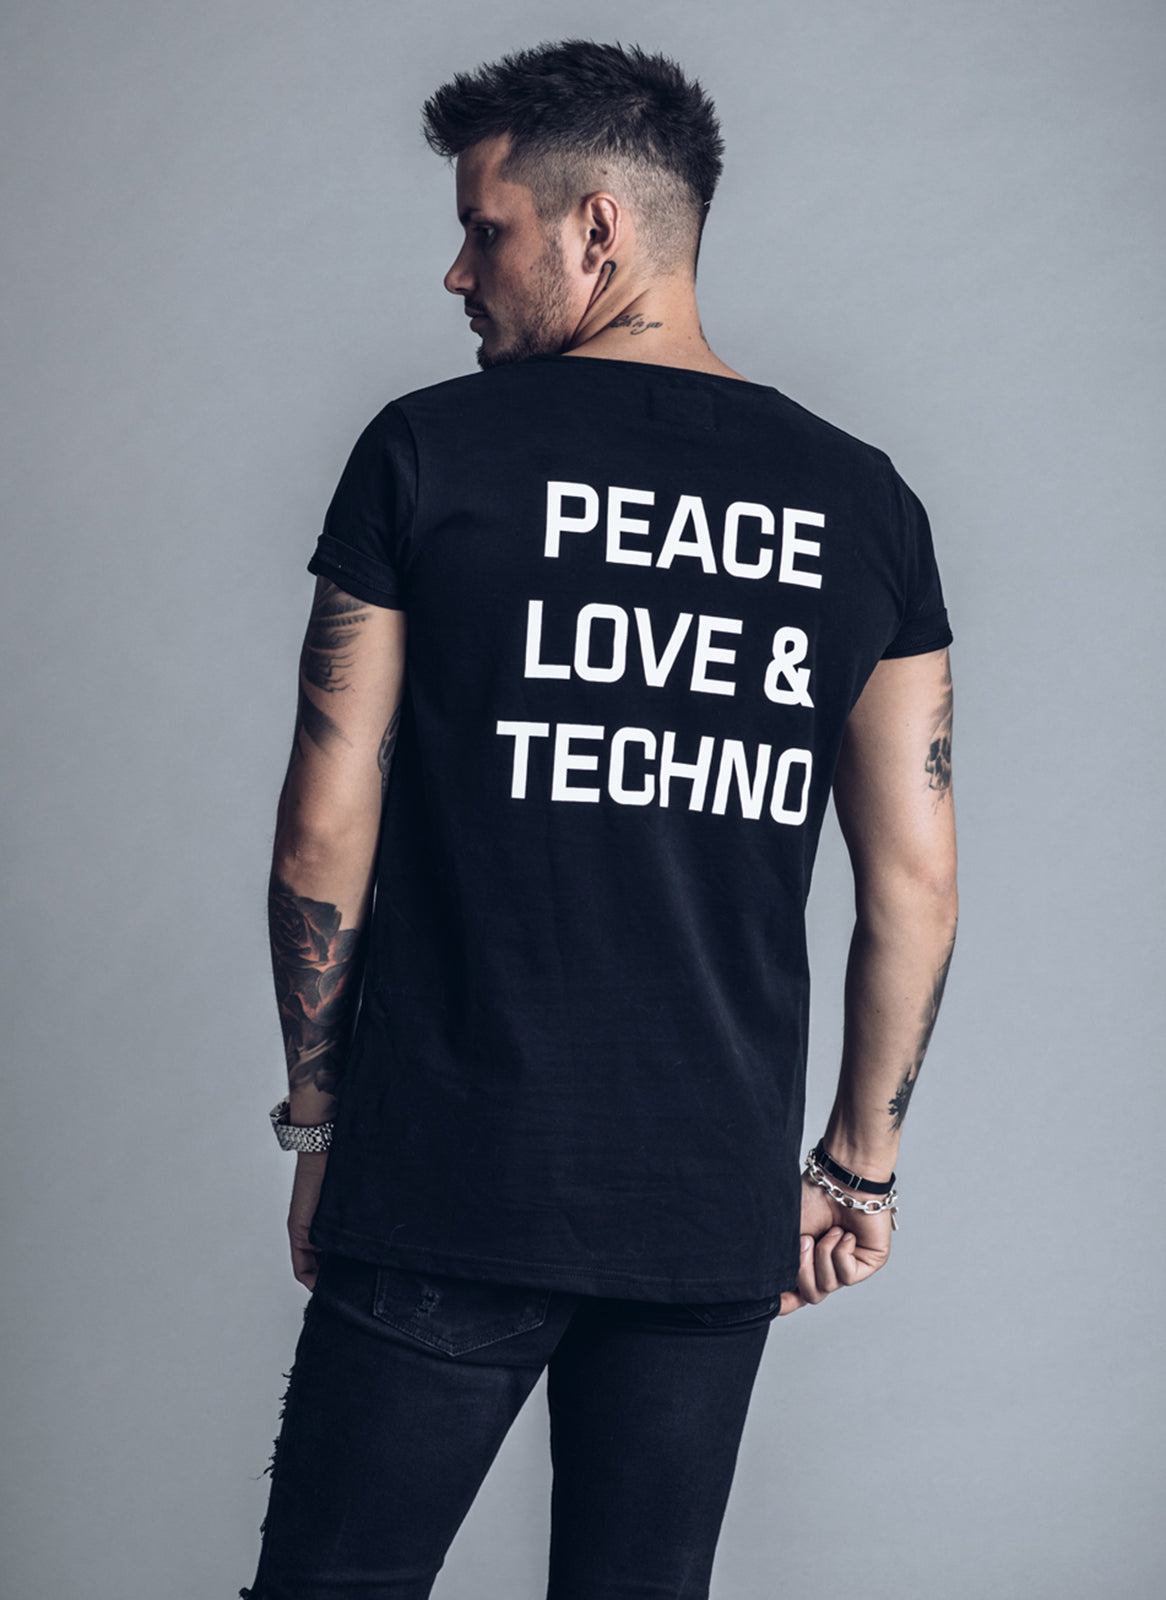 Peace Love Techno - Black t-shirt - We love techno